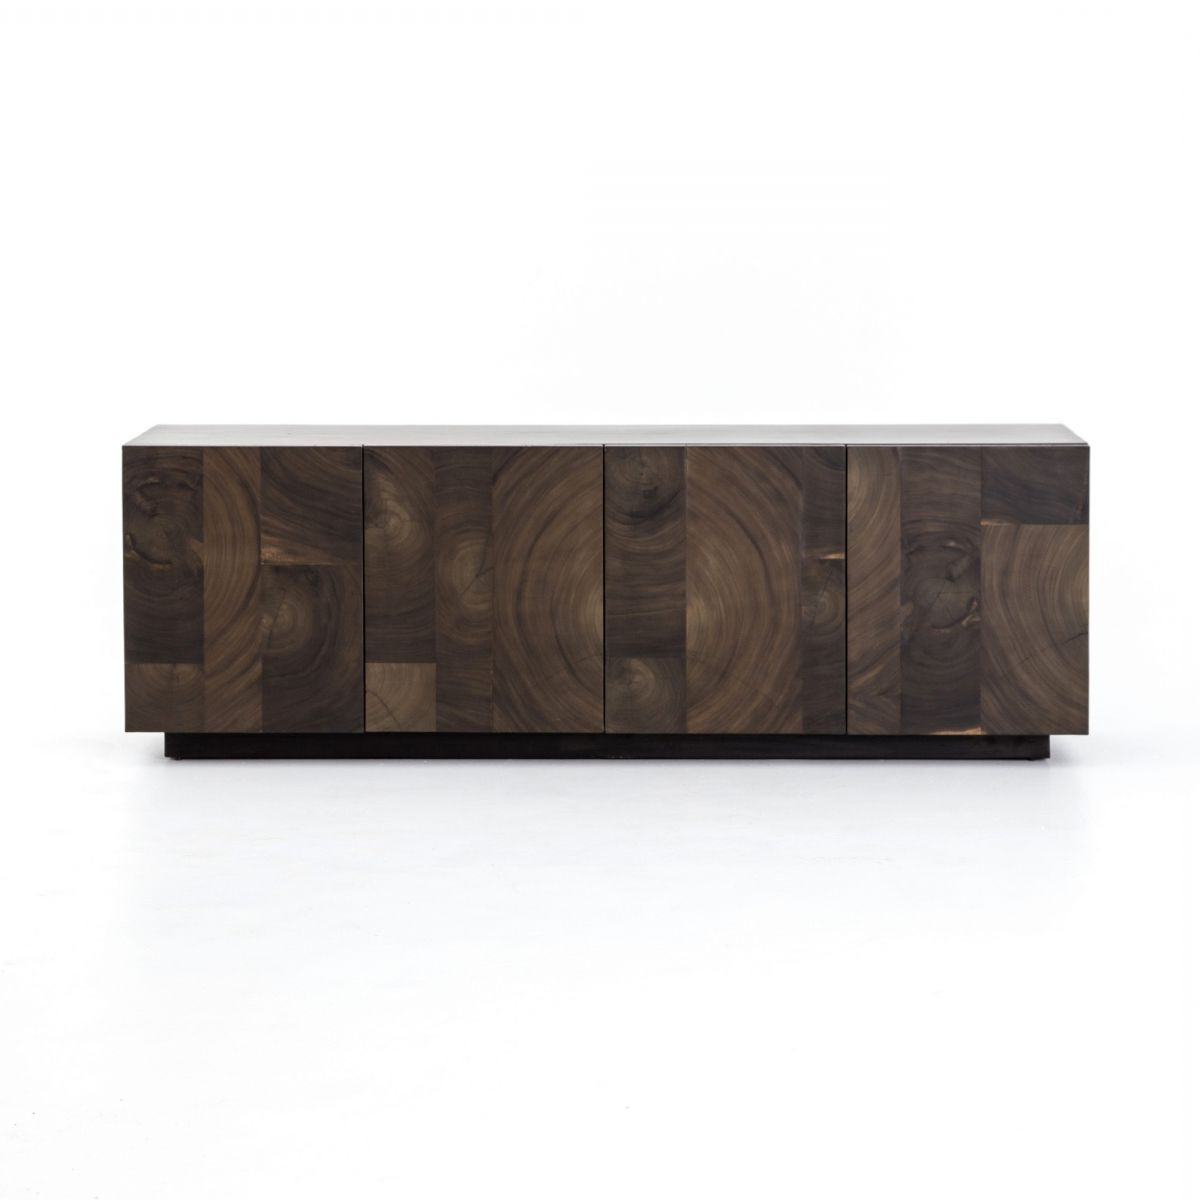 Tabor Sideboard | C Abinet  Console  Storage | Furniture Within Sideboards By Foundry Select (View 19 of 20)